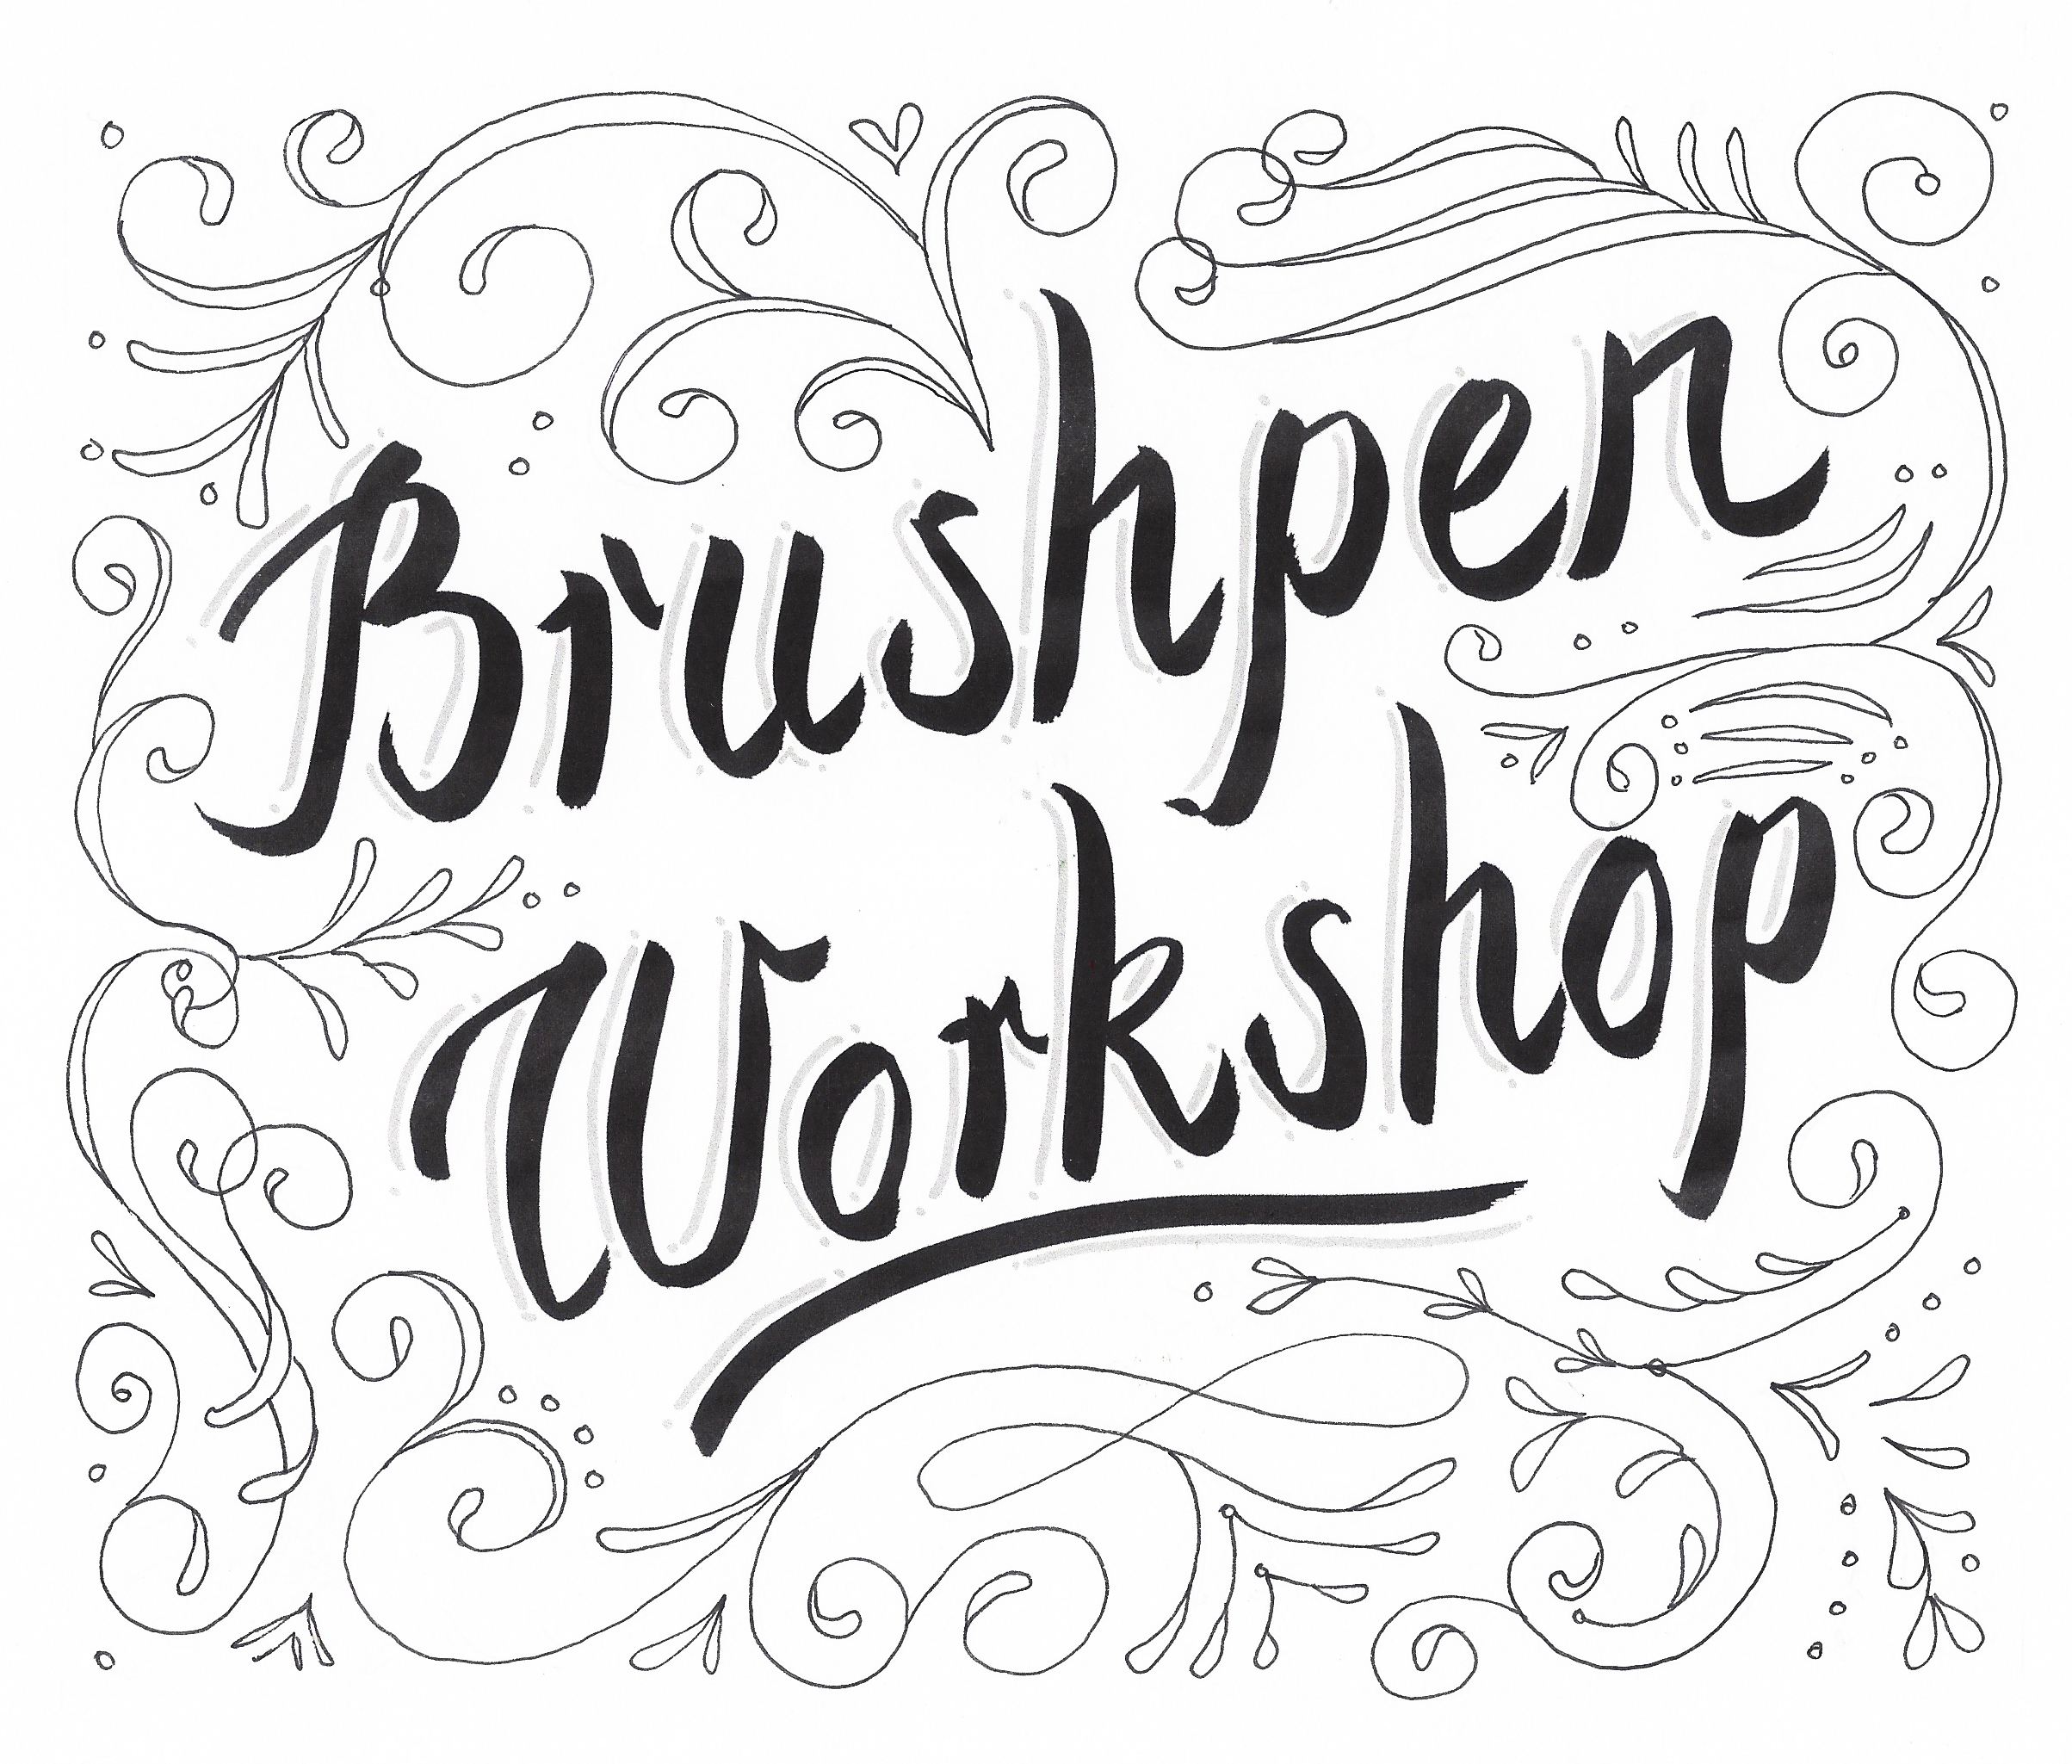 brushpen-workshop-flourishing